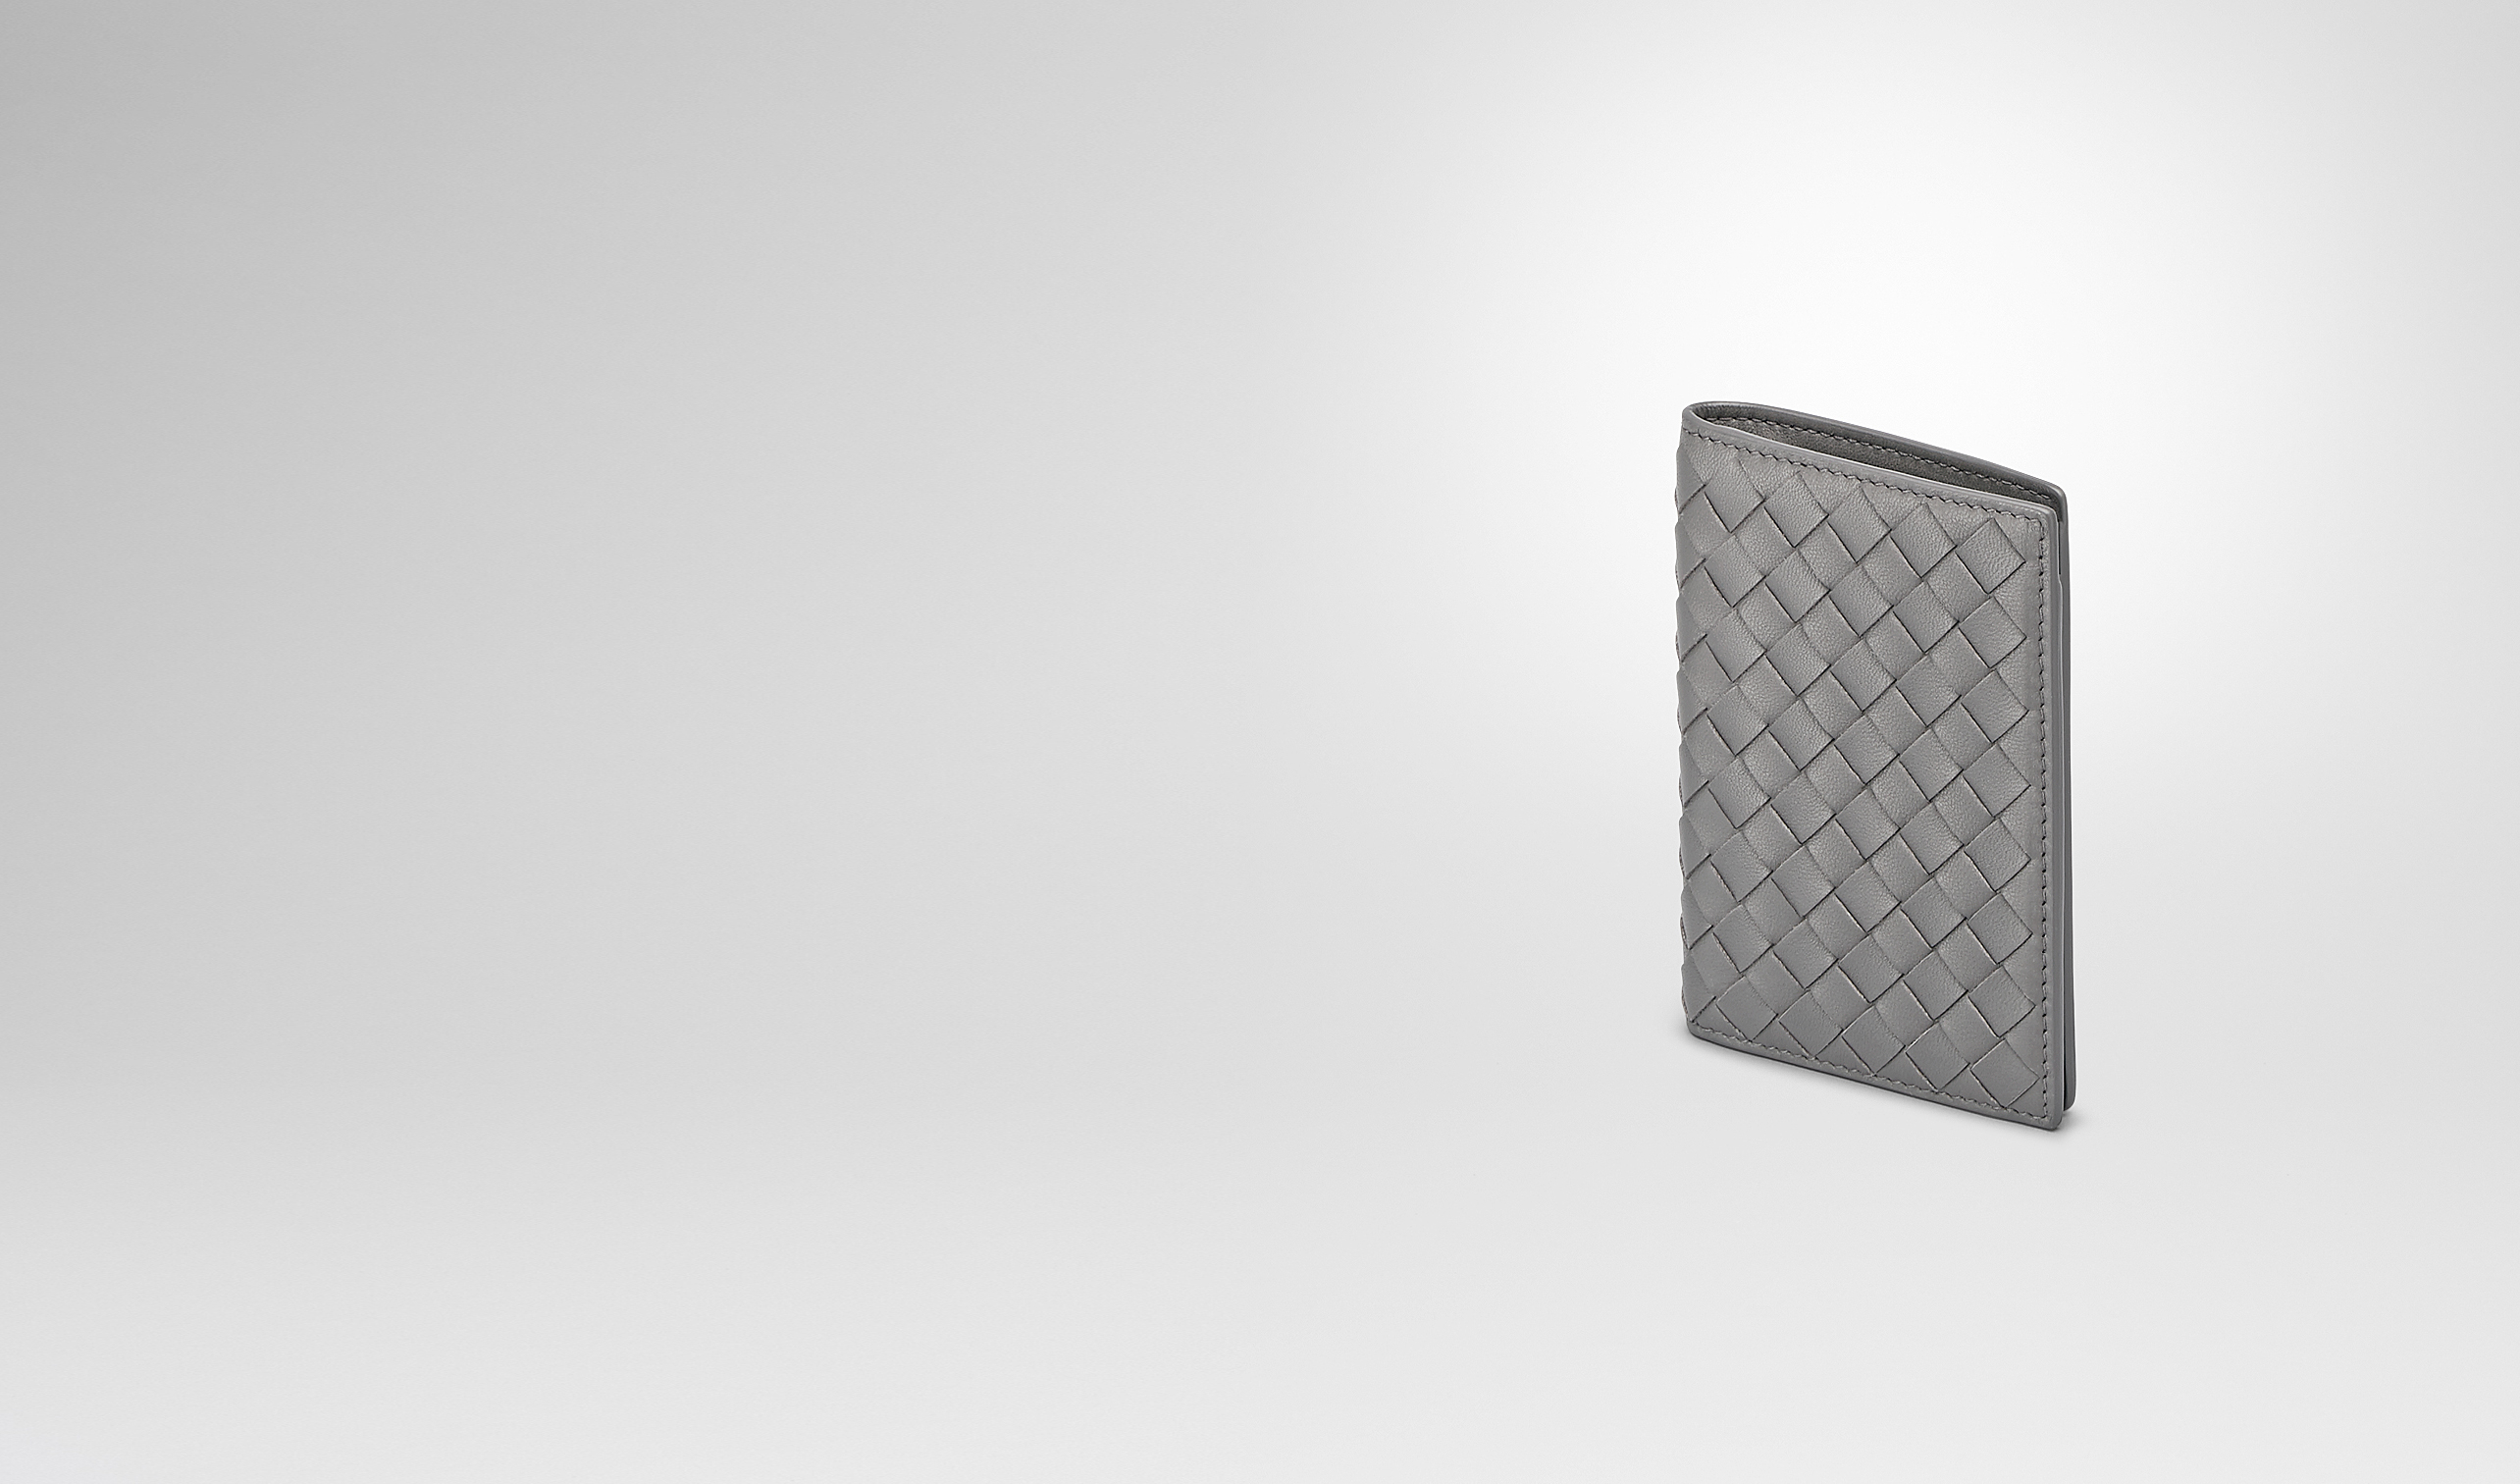 BOTTEGA VENETA Other Leather Accessory E NEW LIGHT GREY INTRECCIATO NAPPA CARD CASE pl